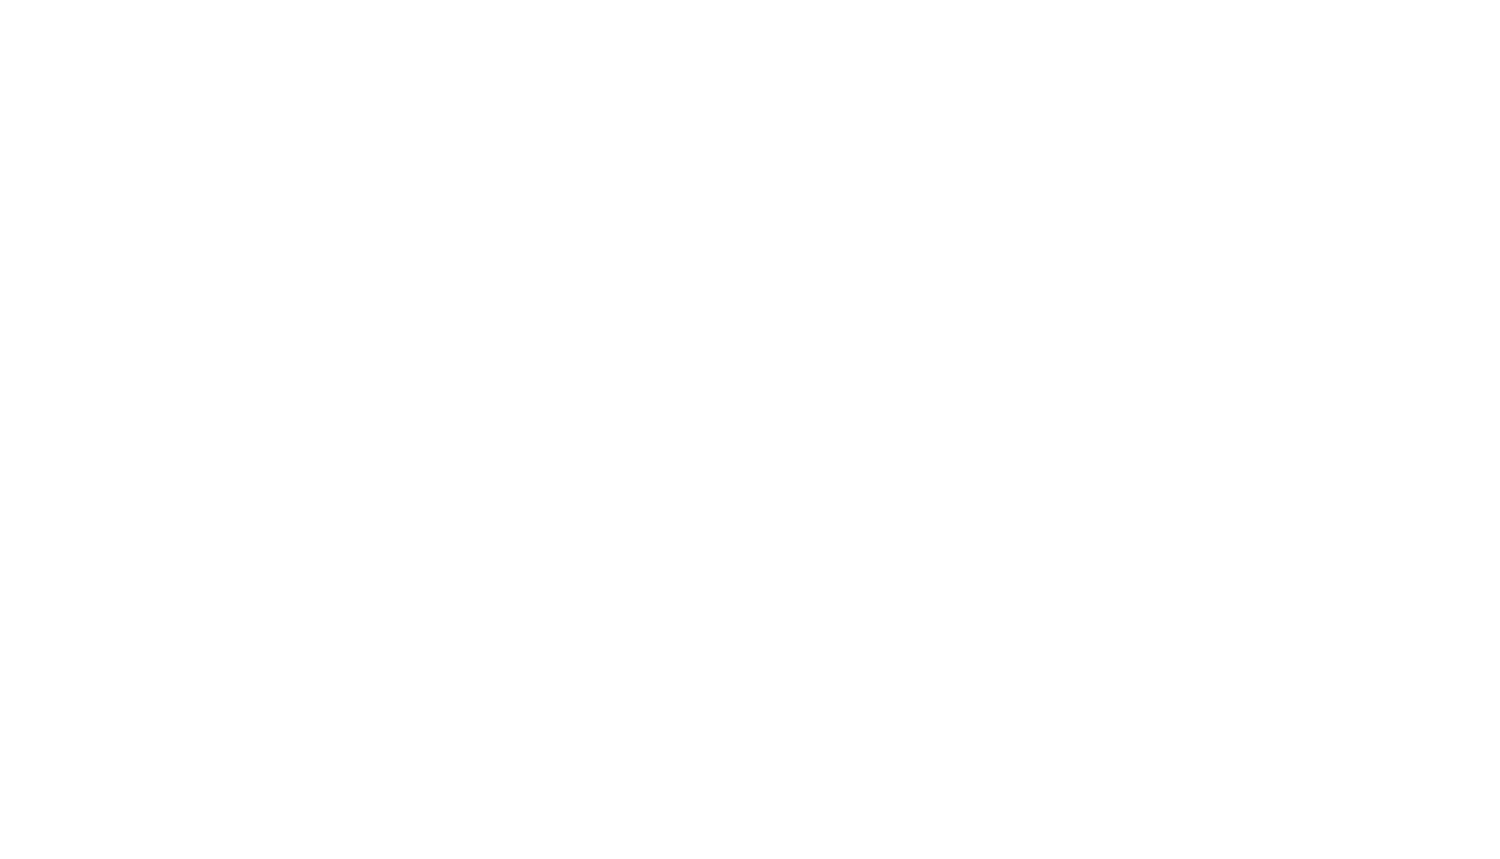 Squid Squad